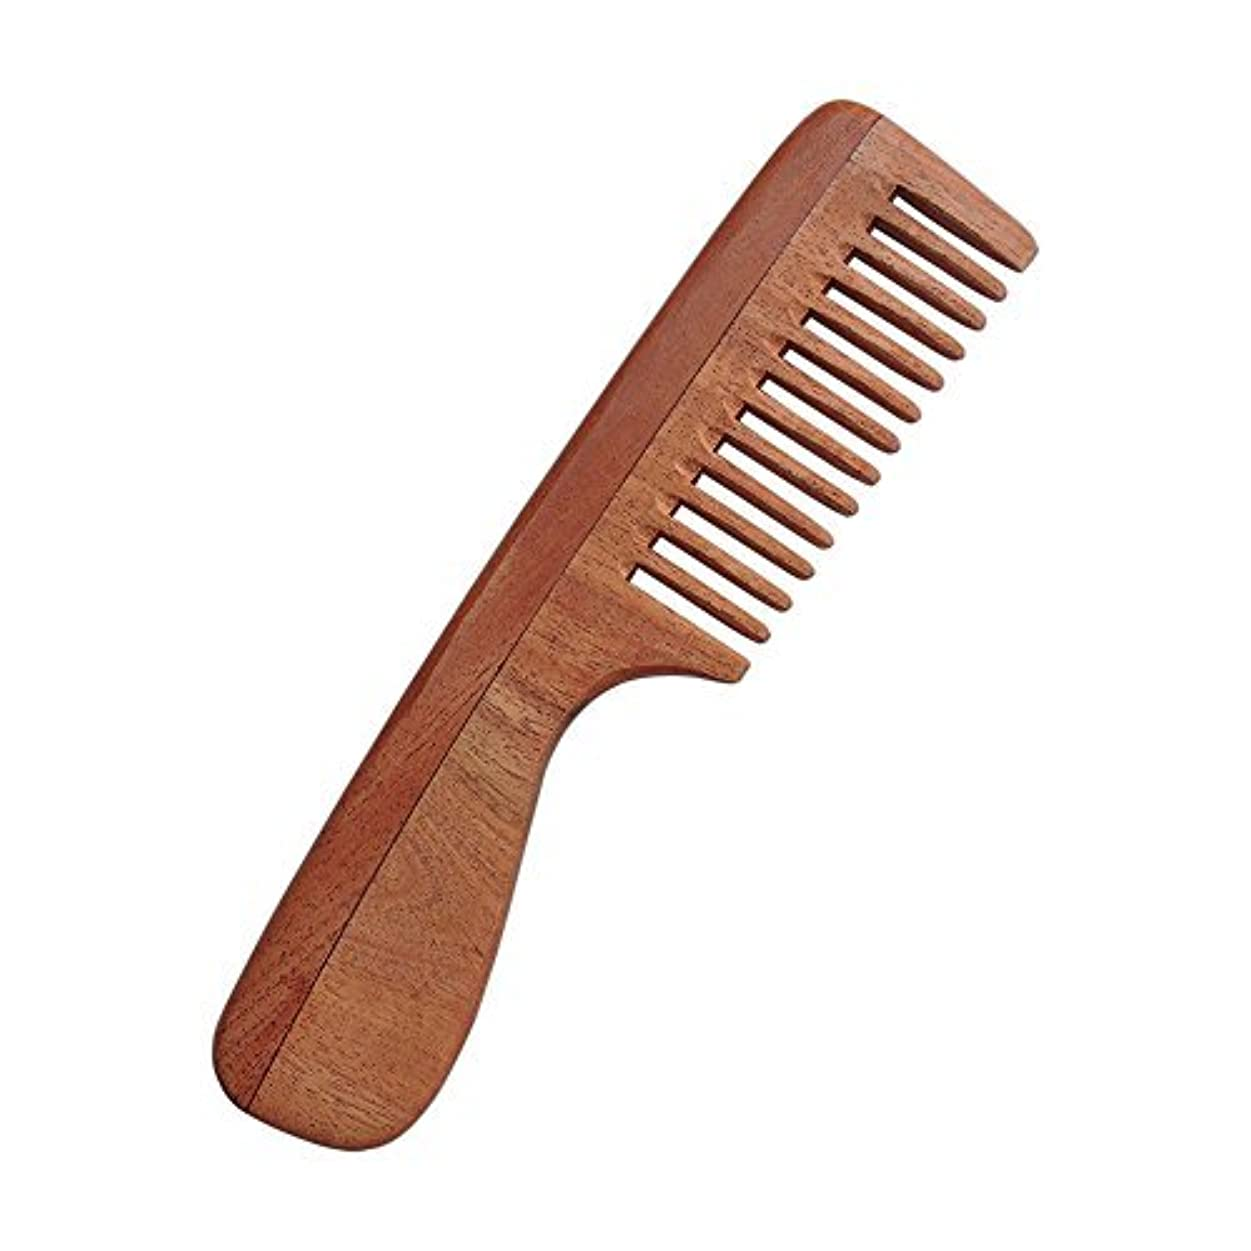 HealthGoodsIn - Pure Neem Wood Wide Tooth Comb with Handle for Thick Hair | Wide Tooth Comb| Comb with Handle | Organic and Natural [並行輸入品]